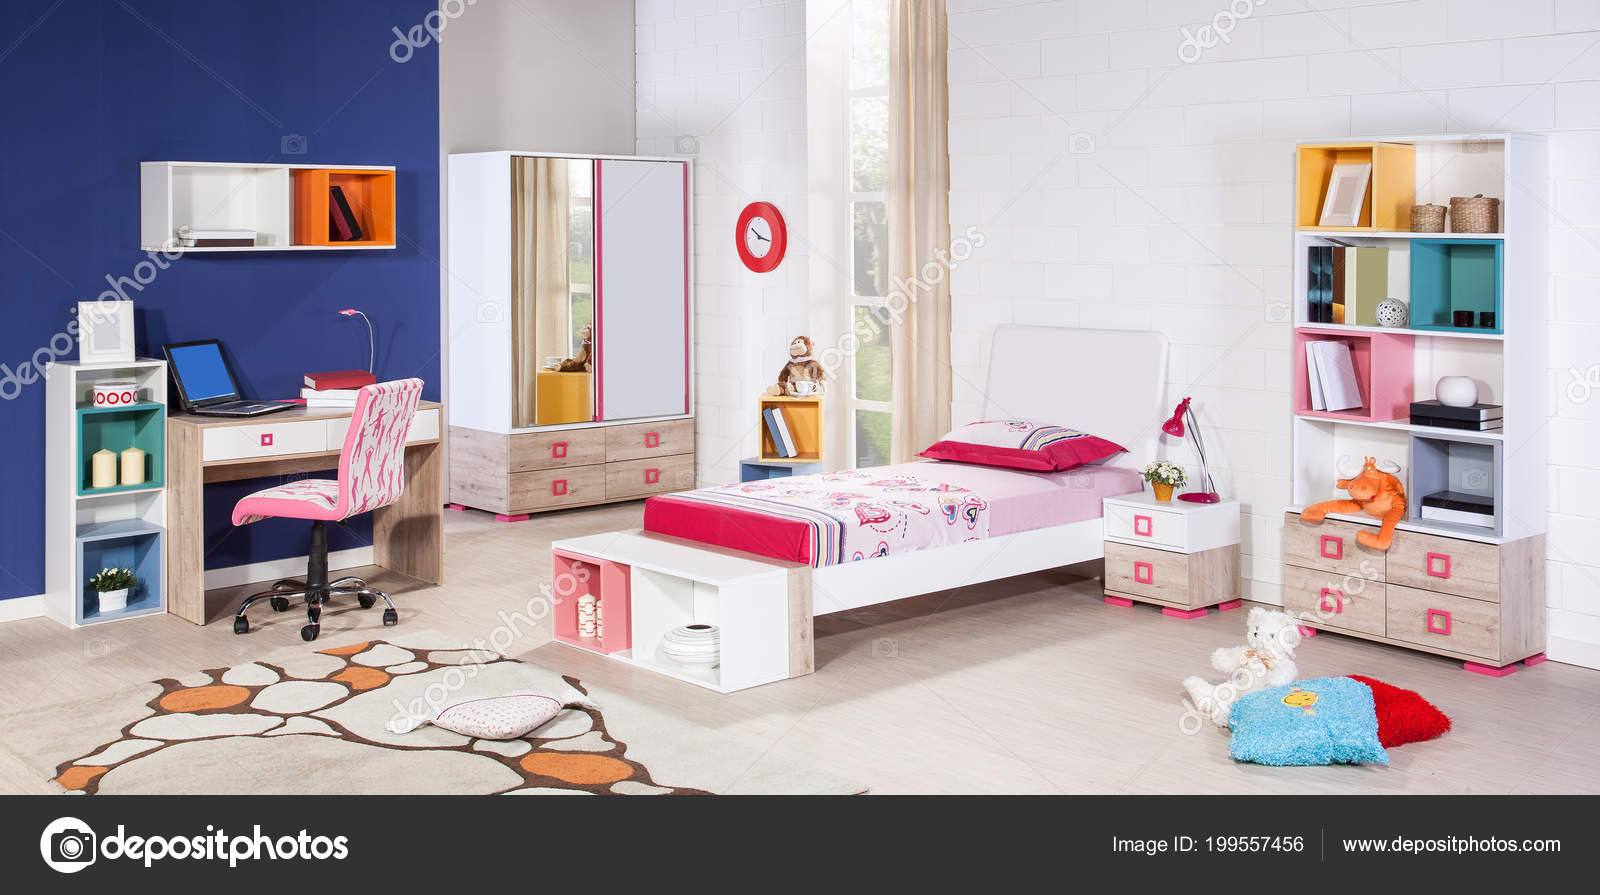 Children Room Interior Modern Style Stock Photo Saaras 199557456